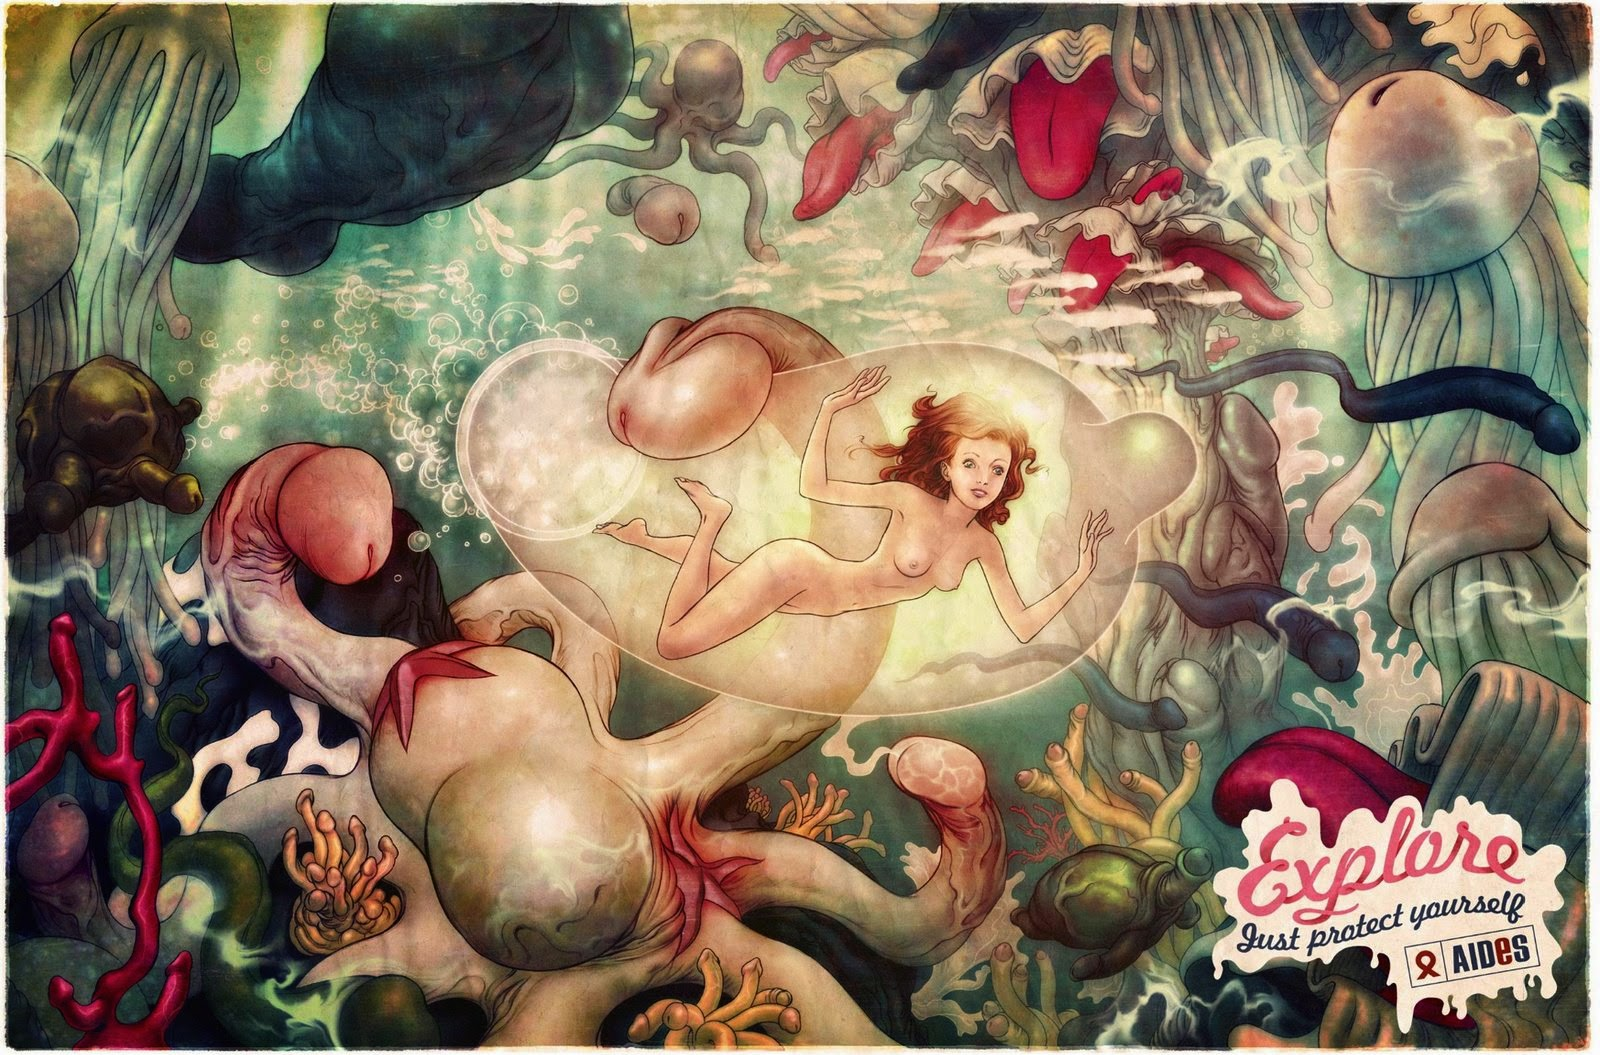 james jean aides posters